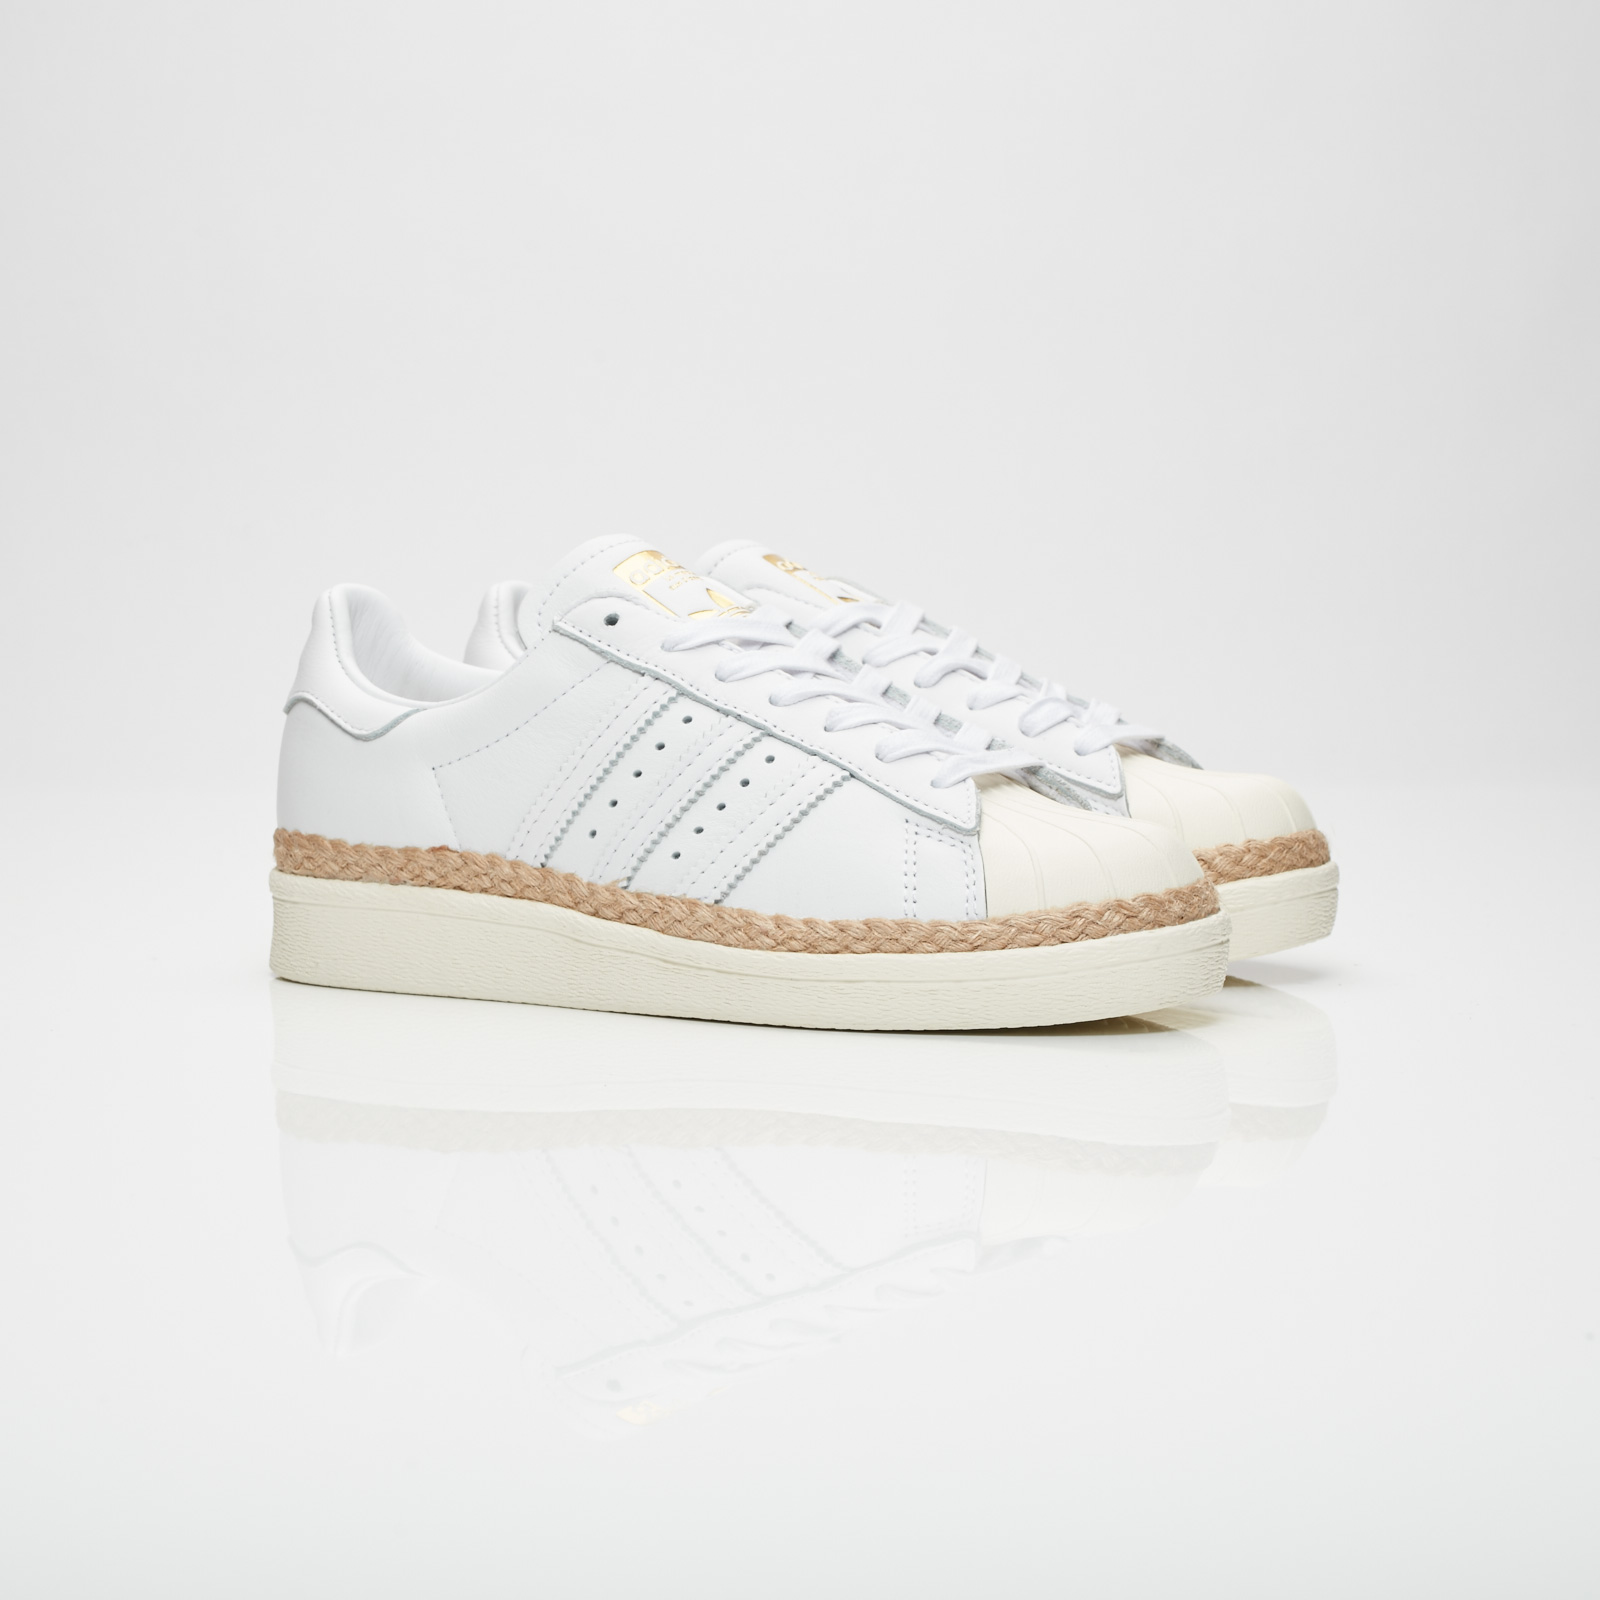 Adidas Superstar 80s rea